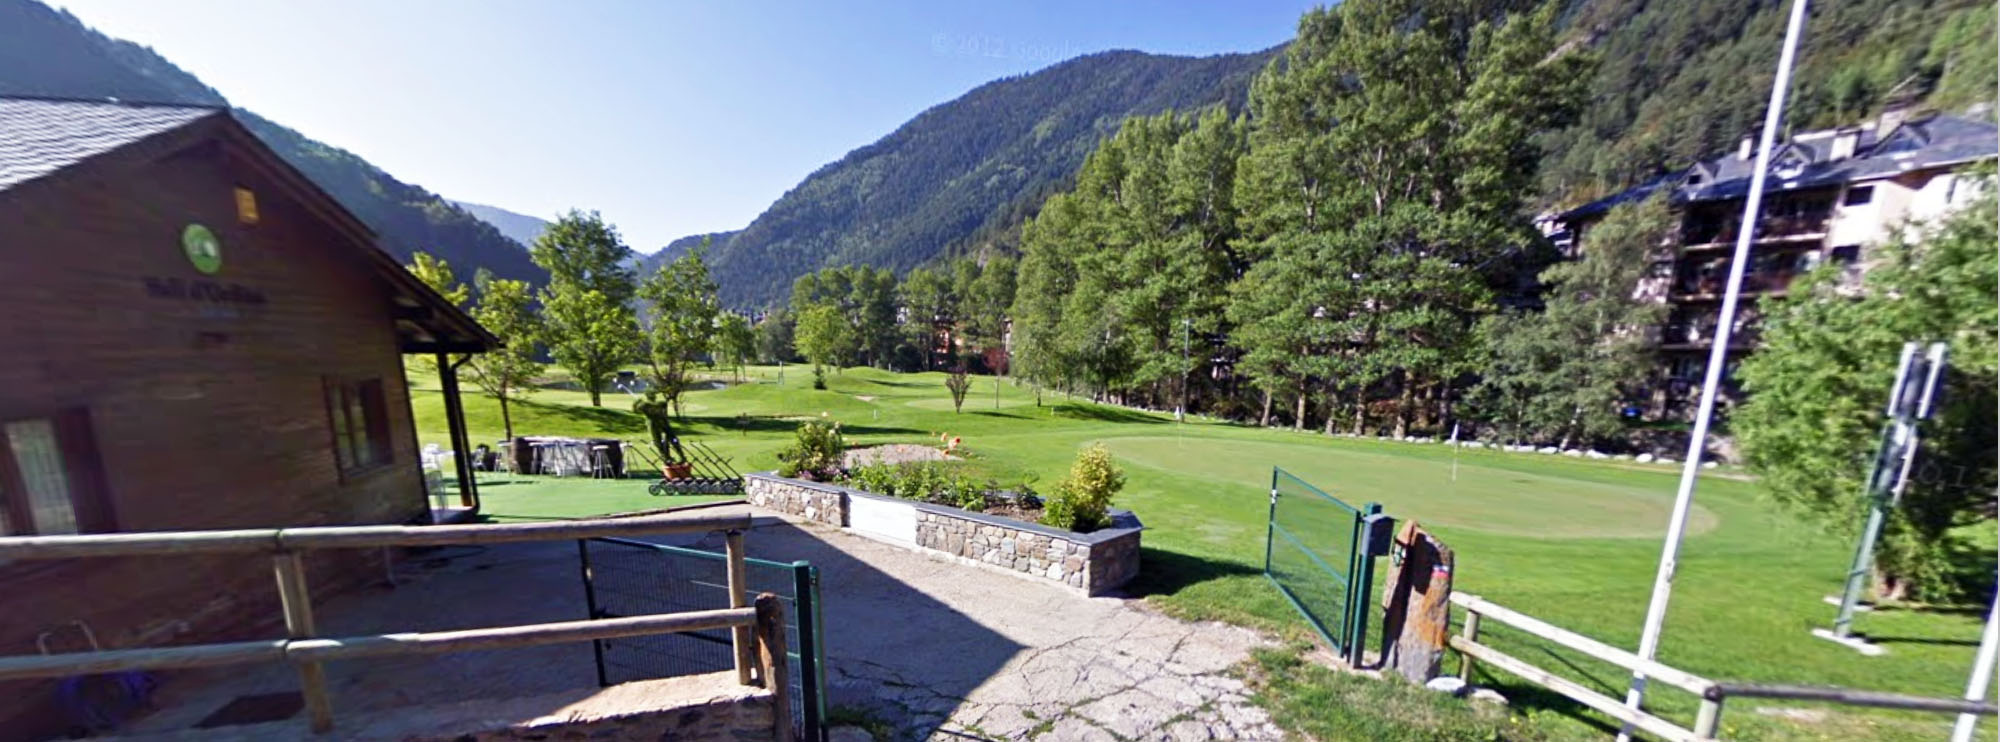 Golf in andorra